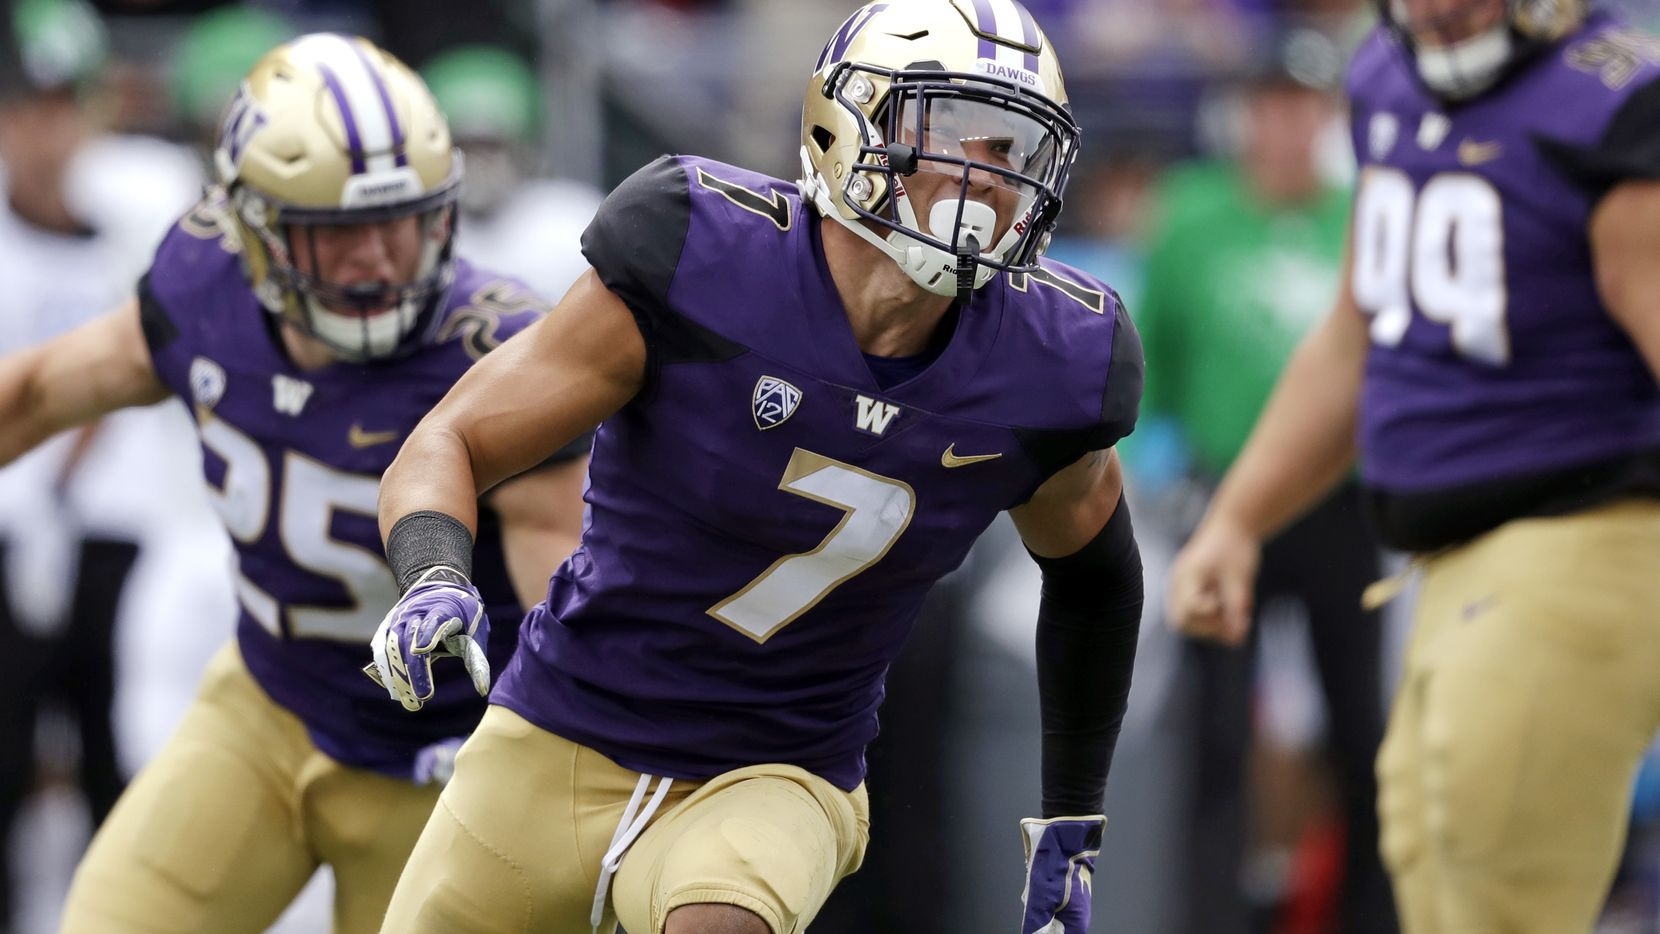 FILE - Washington's Taylor Rapp runs on the field after a play against North Dakota in an NCAA college football game Saturday, Sept. 8, 2018, in Seattle. (AP Photo/Elaine Thompson)